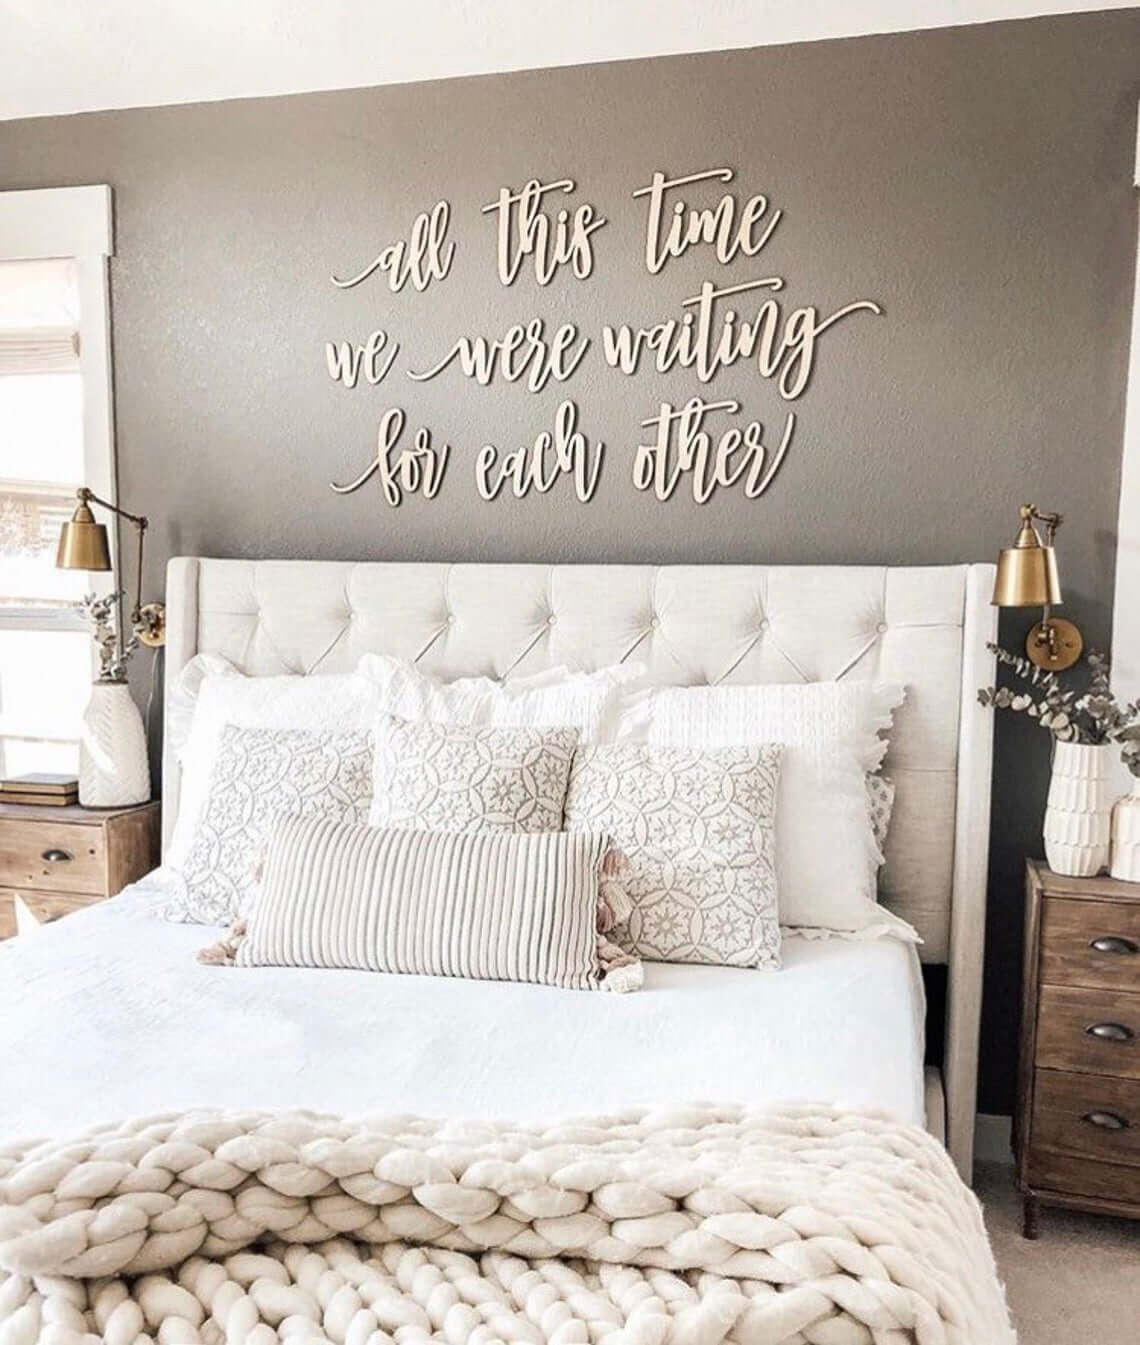 Waiting for Each Other Farmhouse Bedroom